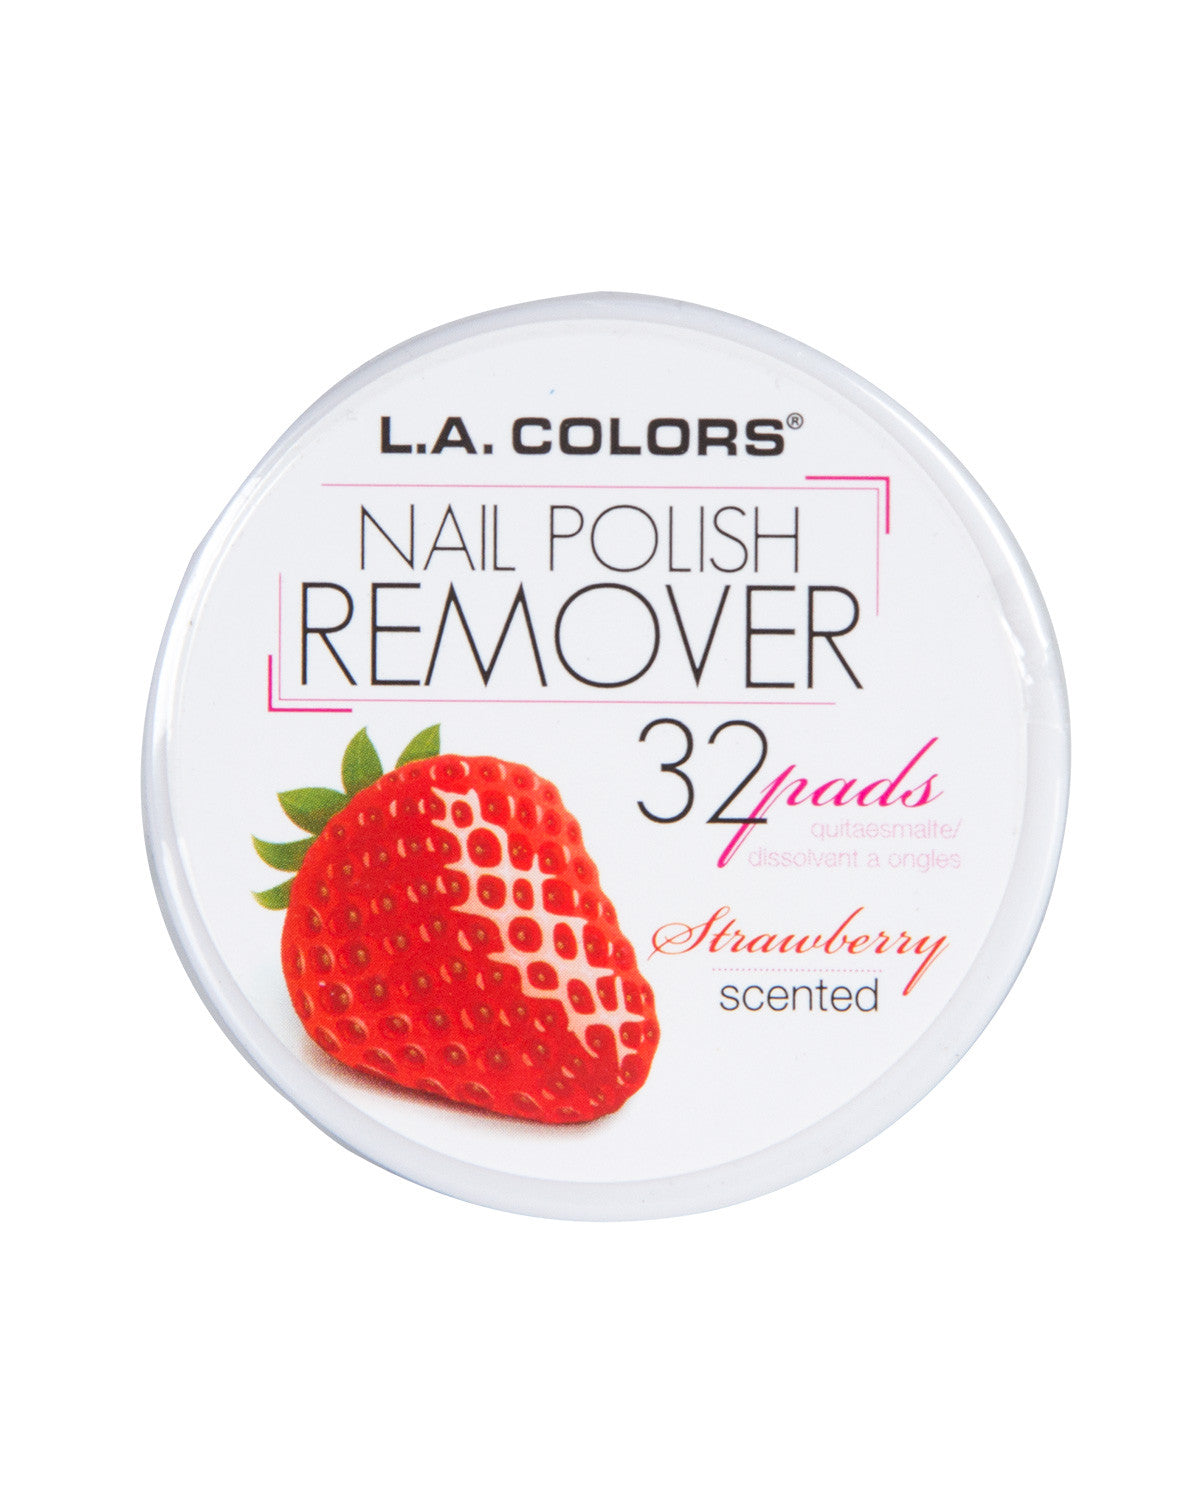 LA Colors - Nail Polish Remover Pads - Strawberry